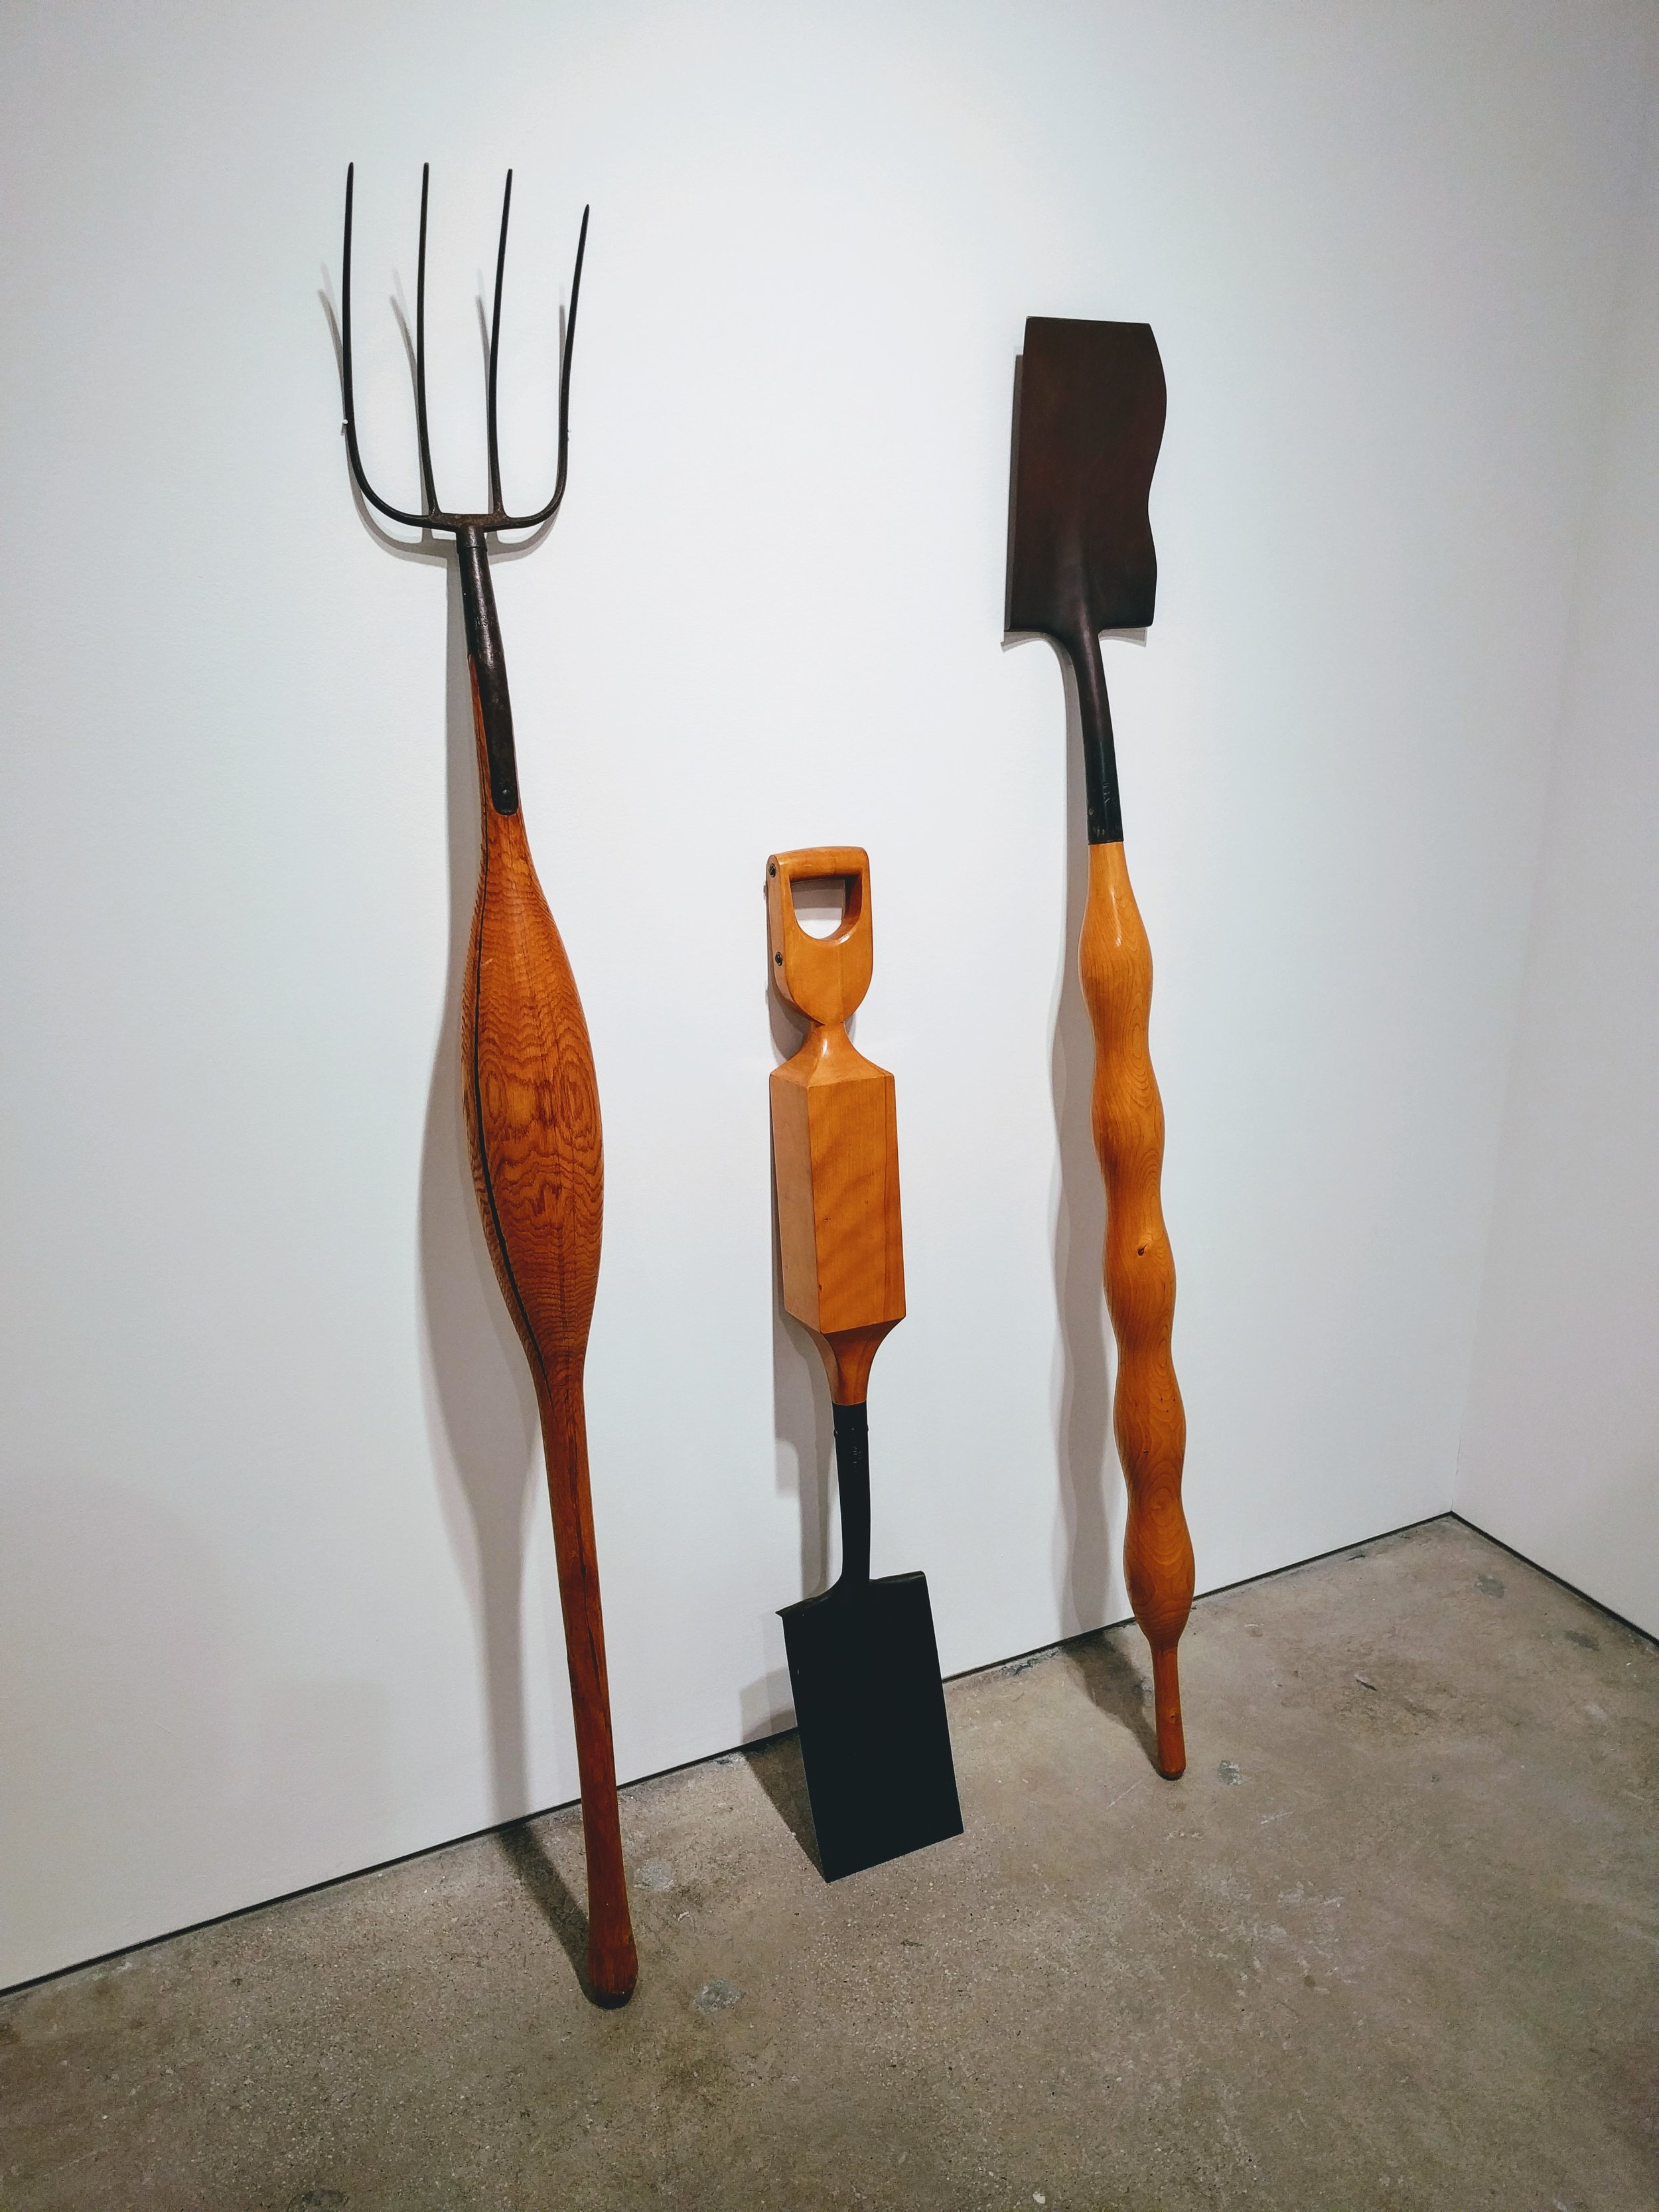 Pitchfork and Shovels , 1970, William Umbreit (Allan Stone Projects) Photo by Jonathan Morgan